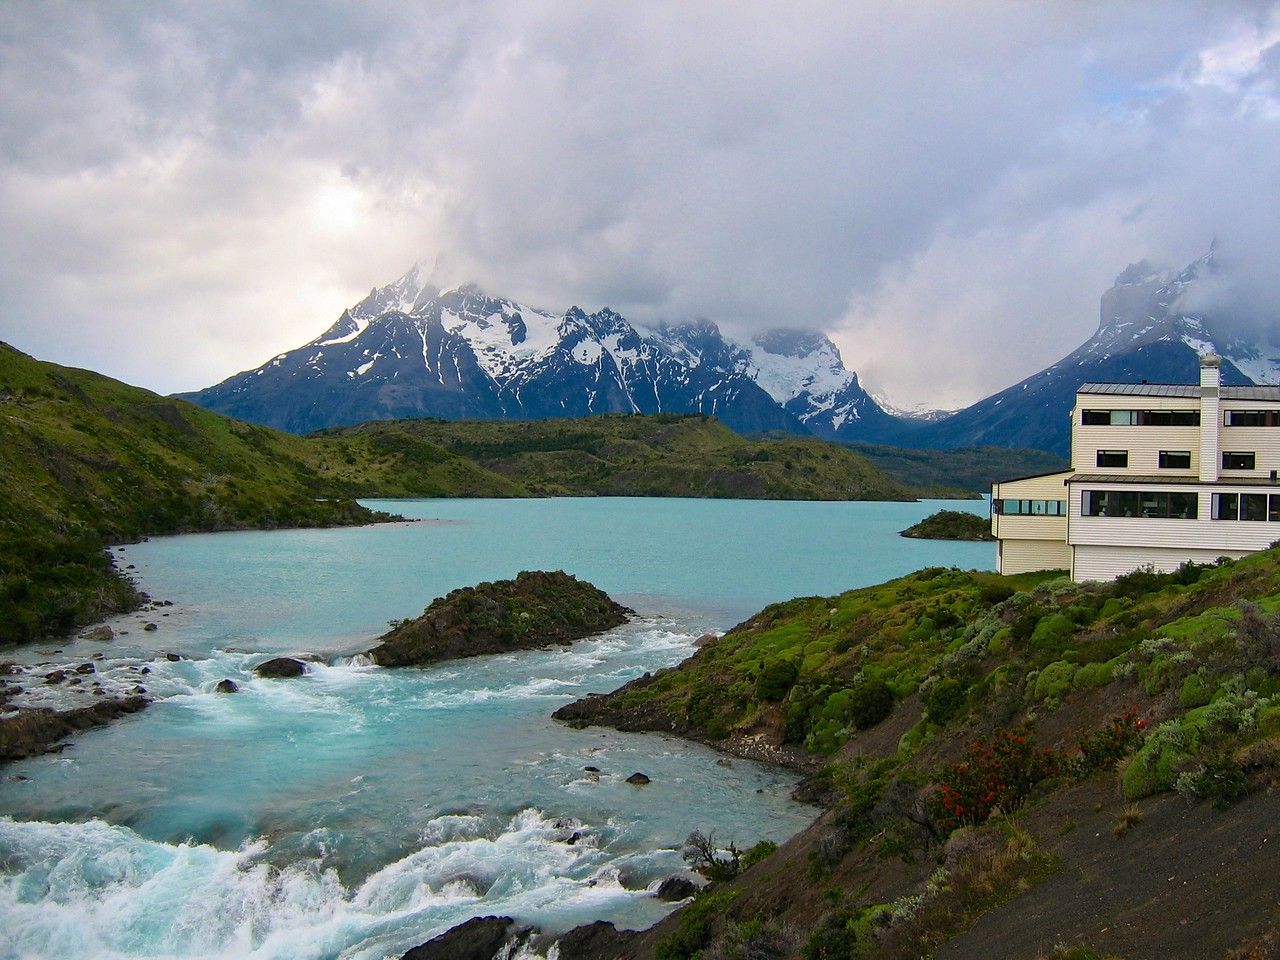 Explora Patagonia opened in 1993 on the banks of the Salto Chico waterfall. It affords an excellent view of the unique Paine Massif and two of the three impressive torres, or towers, which give the park its name. (when the clouds are not too low)